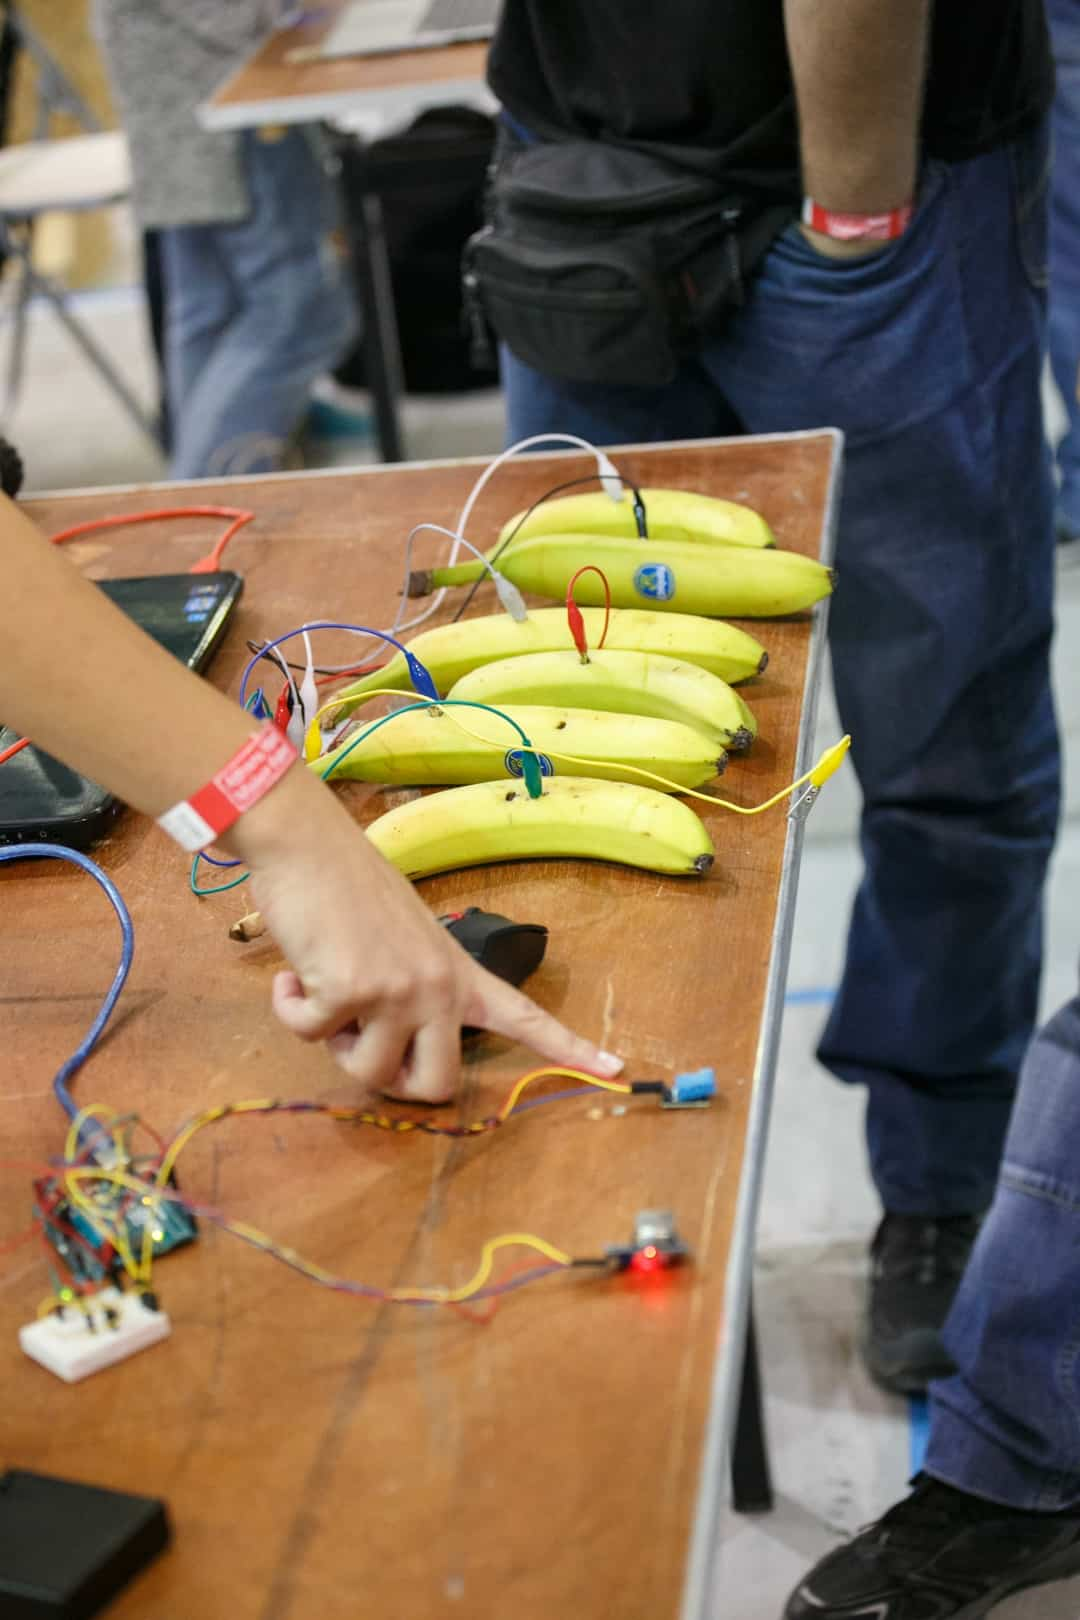 Athens Mini Maker Faire 2017 - Έλα να δεις, να μάθεις, να φτιάξεις! 7